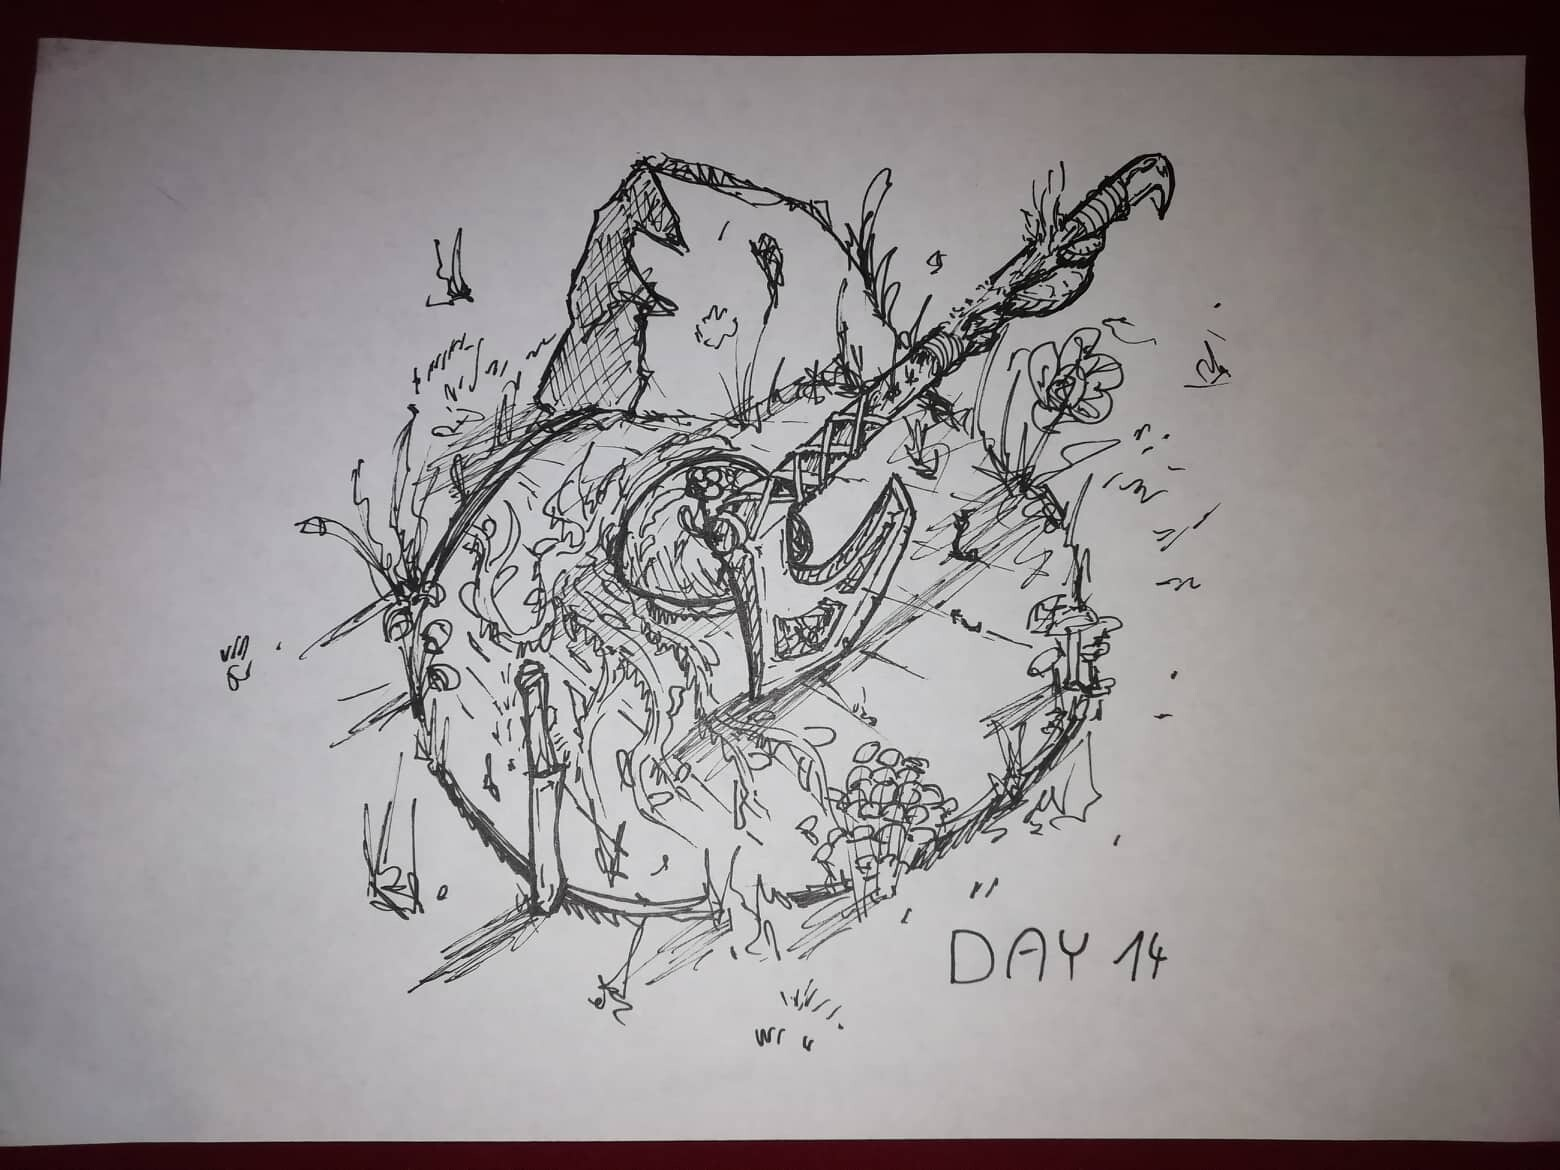 Day 14 - Overgrown